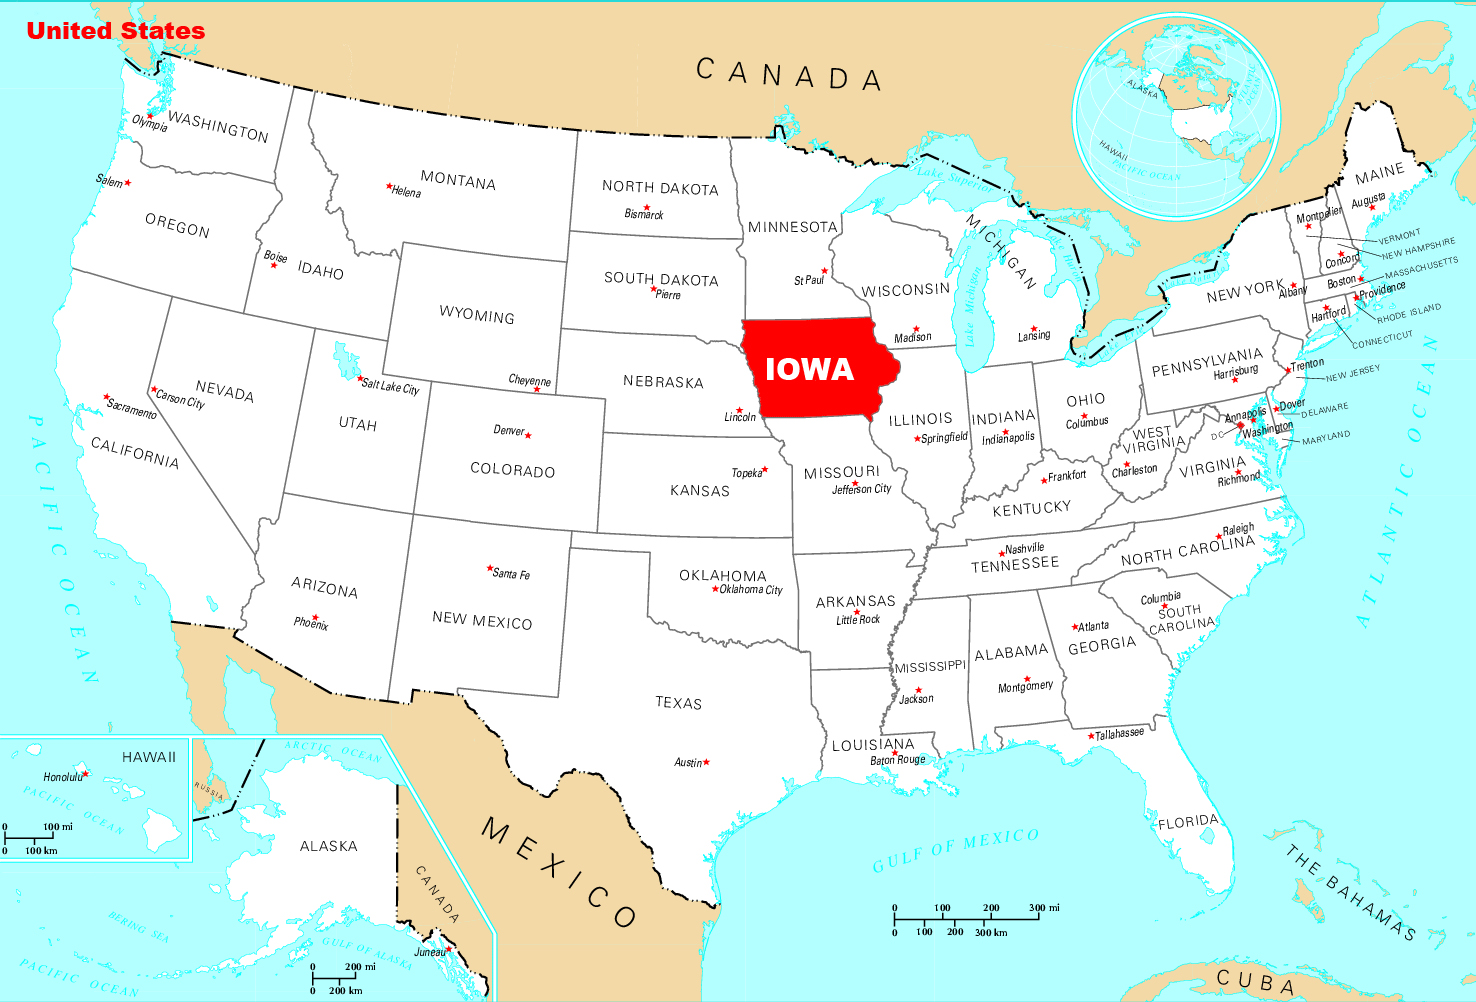 Detailed location map of Iowa state. Iowa state detailed location ...